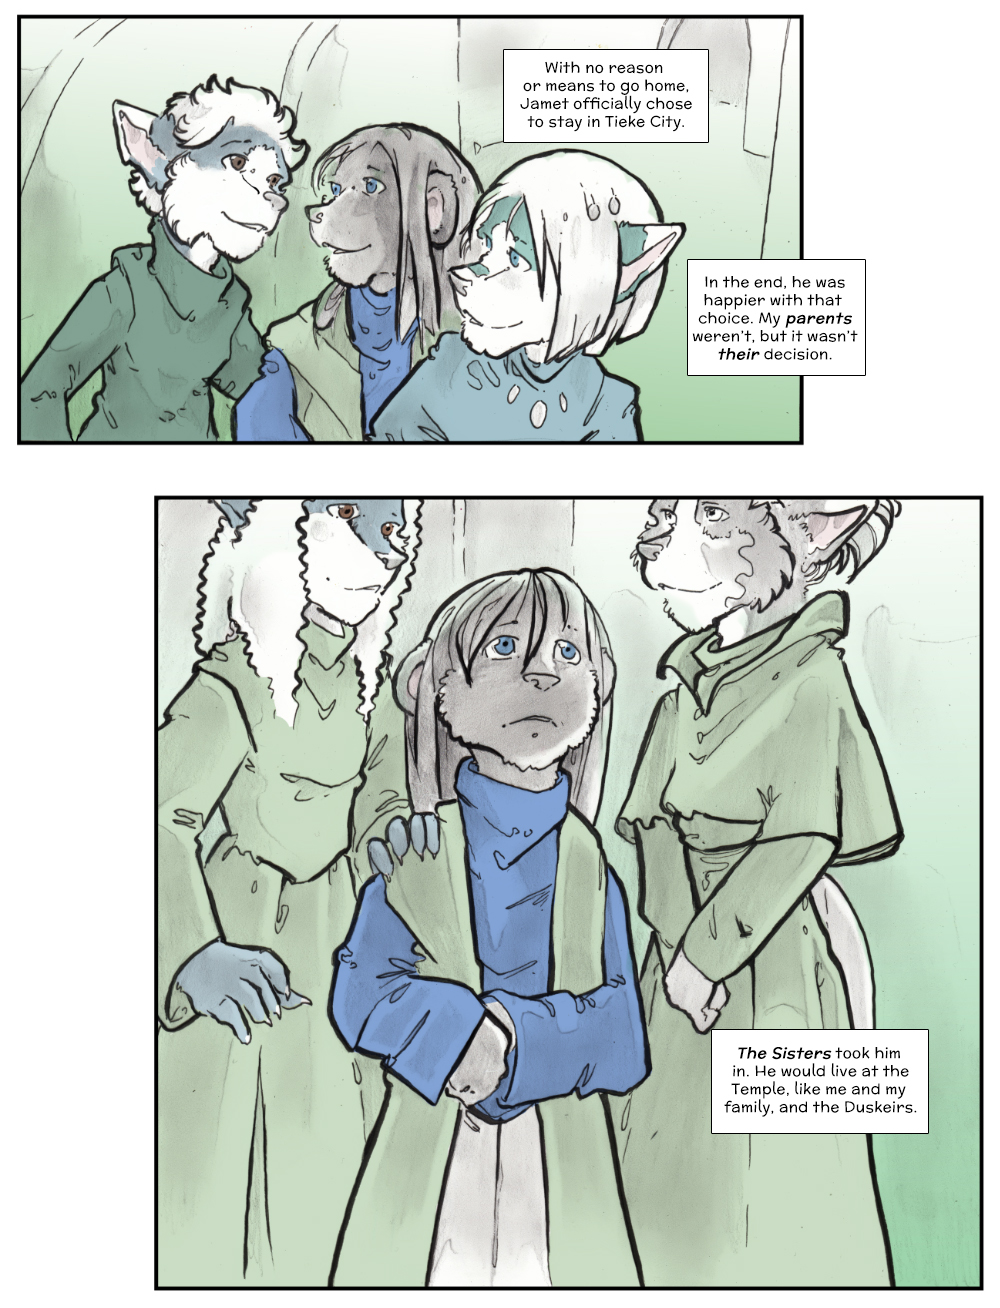 Chapter Three: Jamet's Story: Page 251